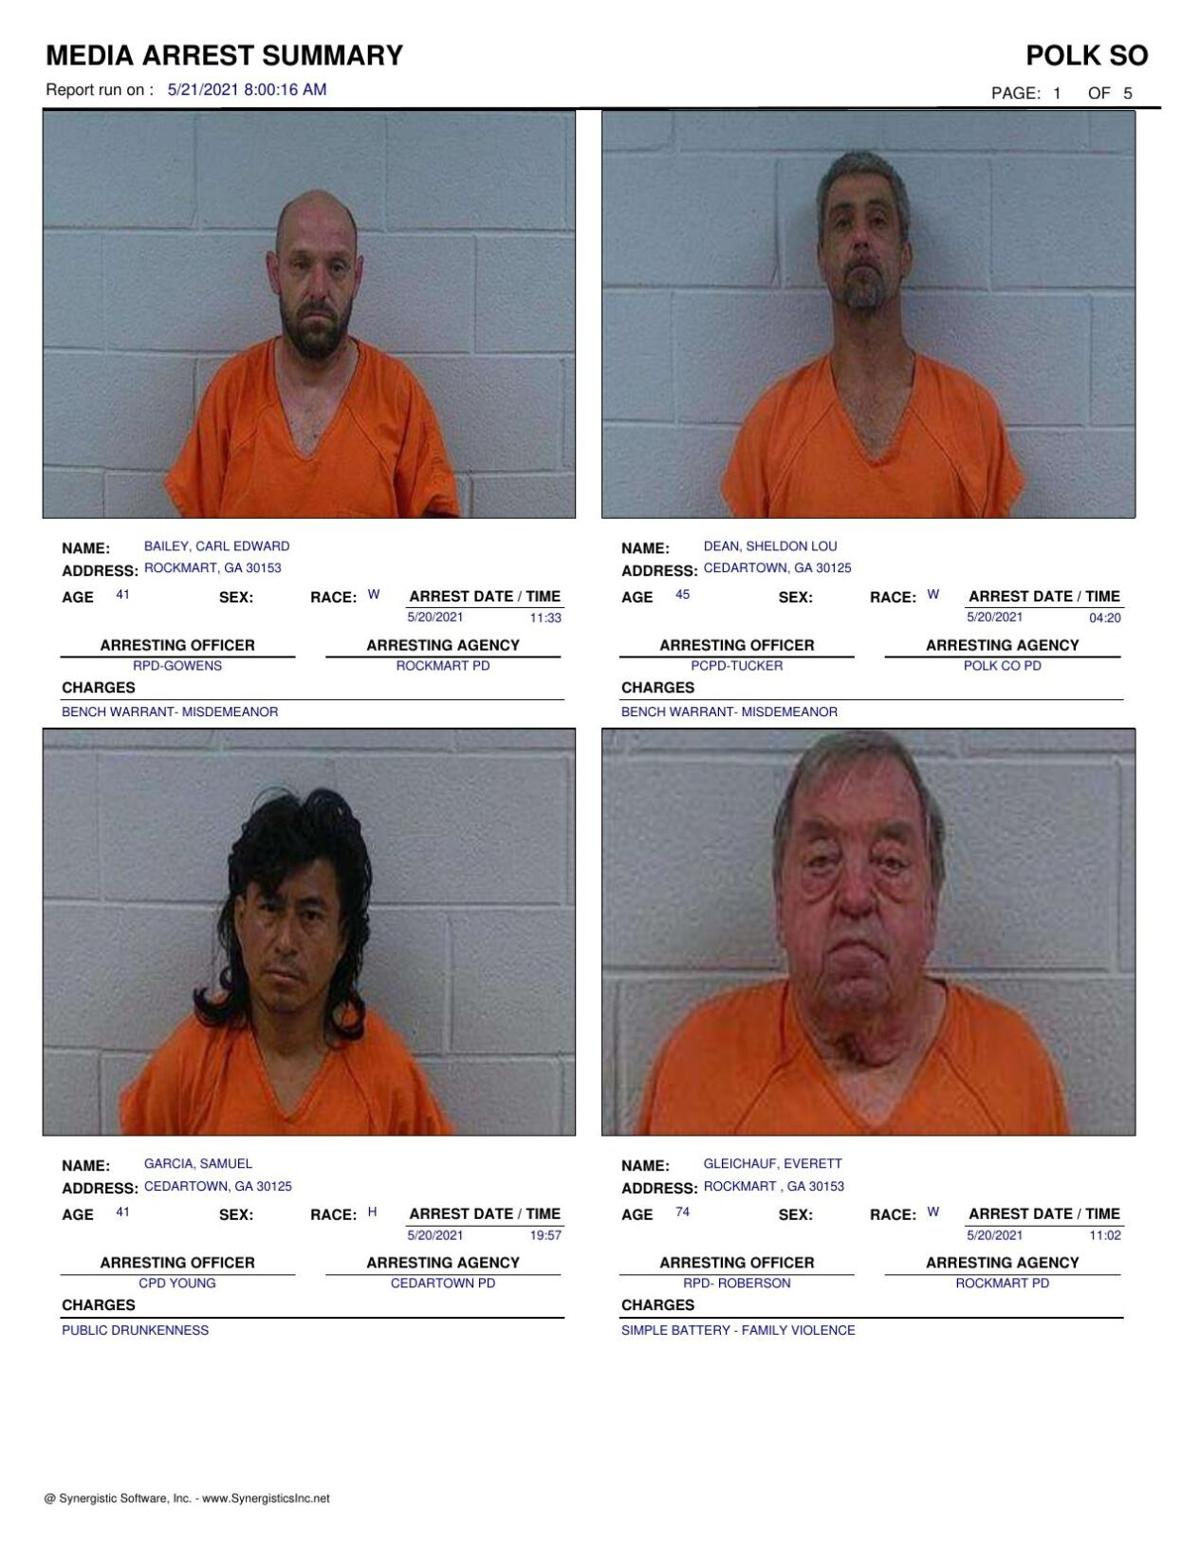 Polk County Jail Report for Friday, May 21